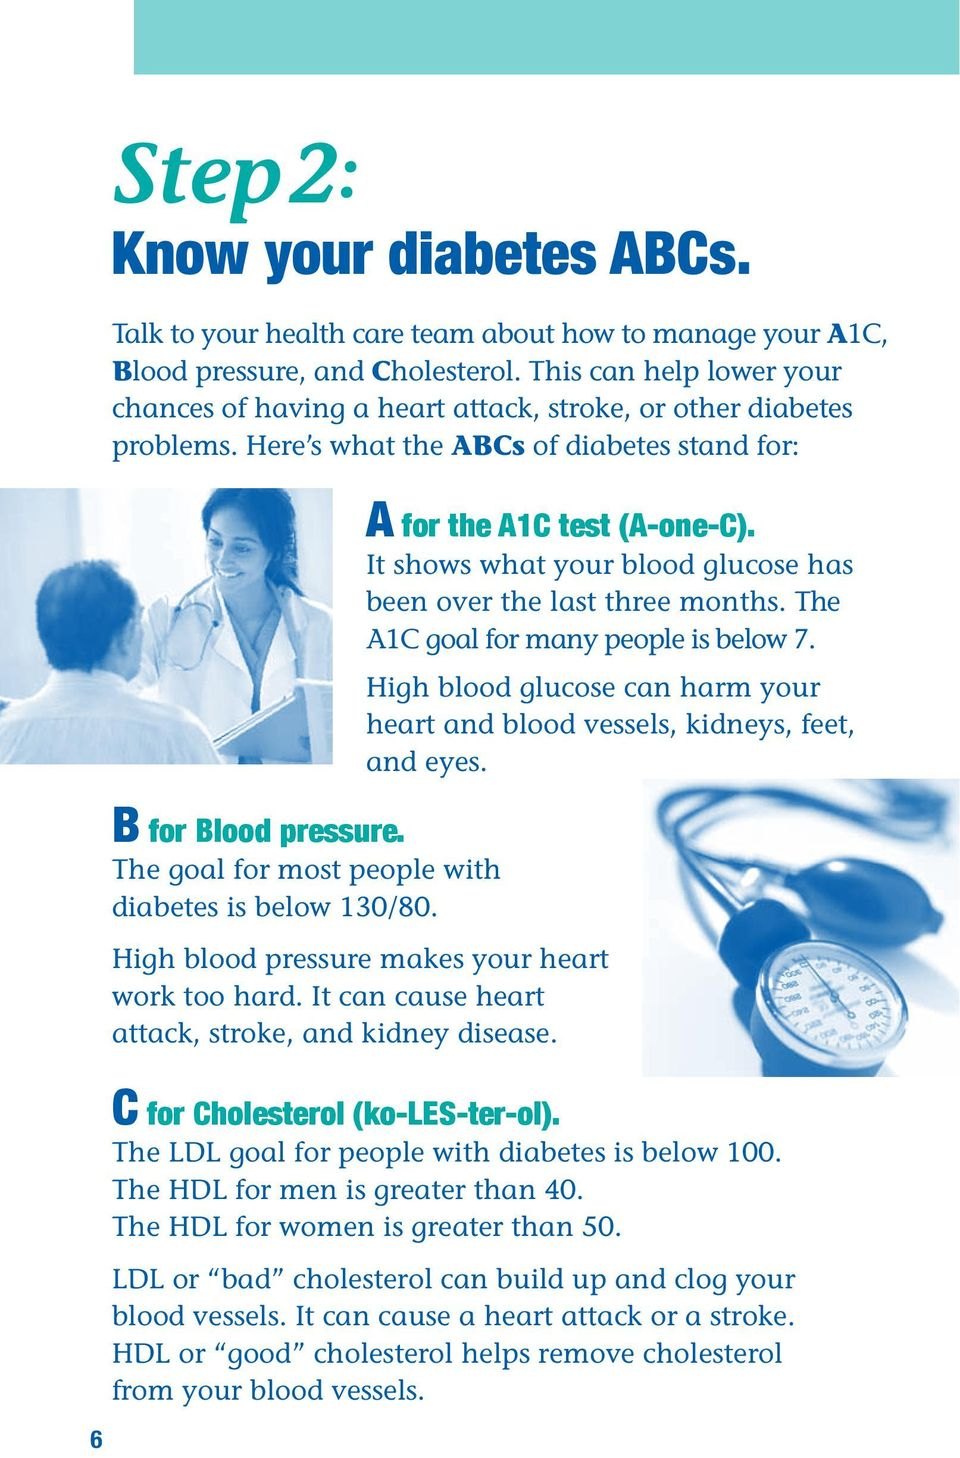 The goal for most people with diabetes is below 130/80. High blood pressure makes your heart work too hard. It ca cause heart attack, stroke, ad kidey disease. A for the A1C test (A-oe-C).